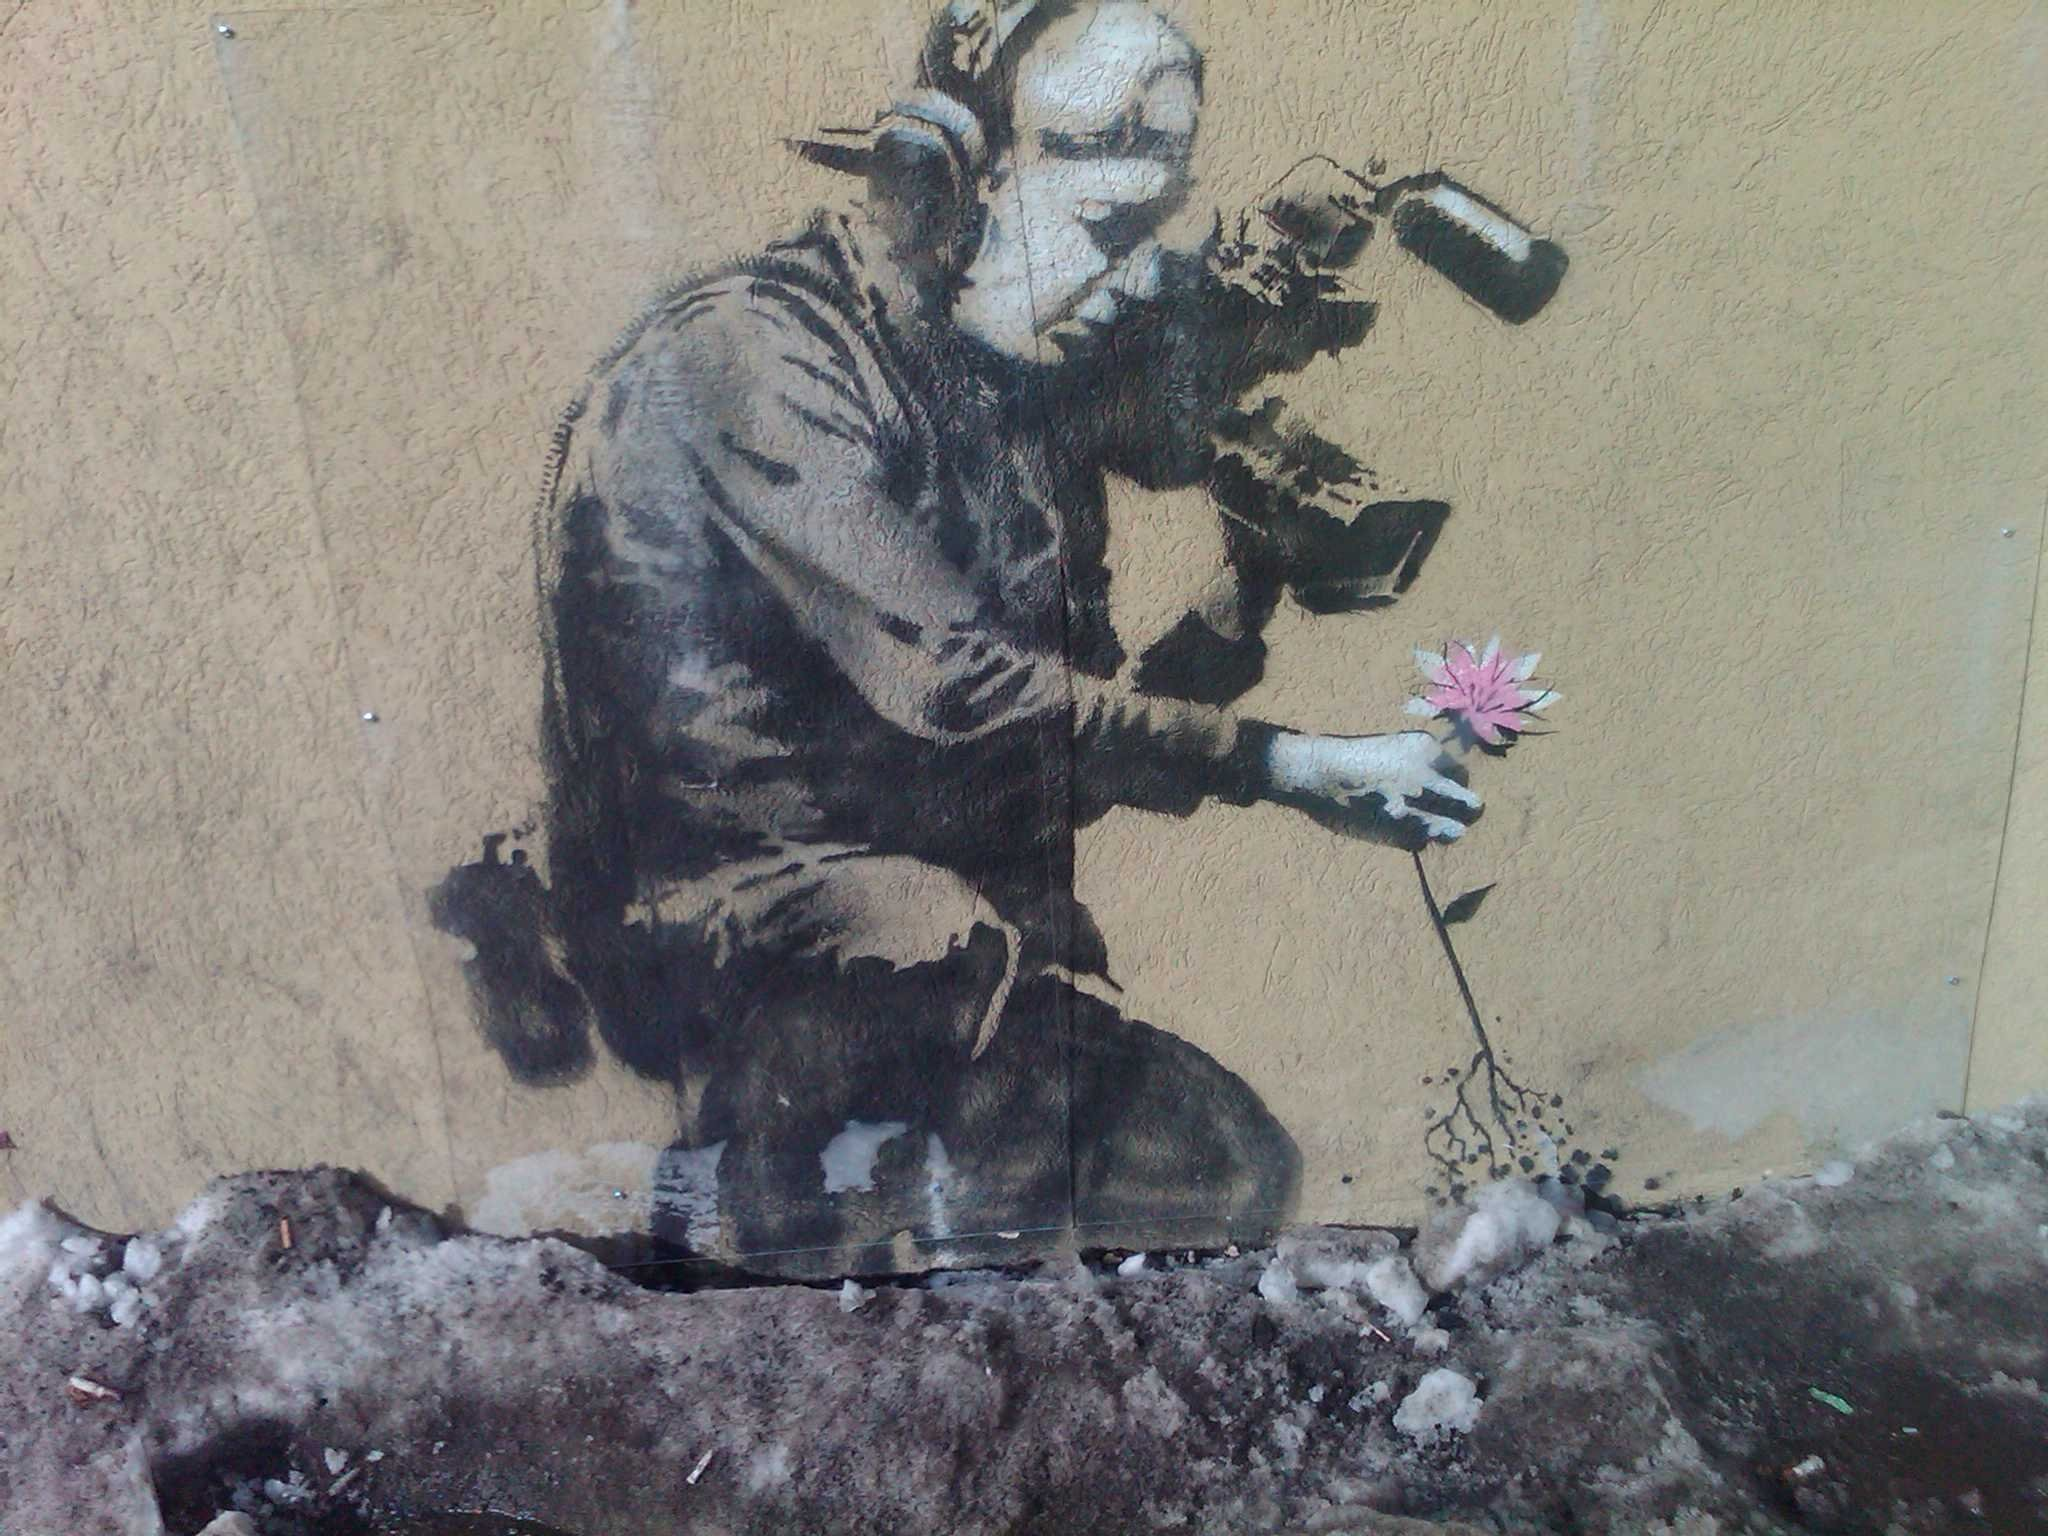 banksy backgrounds Pictures 1920×1080 Wallpapers Banksy (36 Wallpapers) |  Adorable Wallpapers